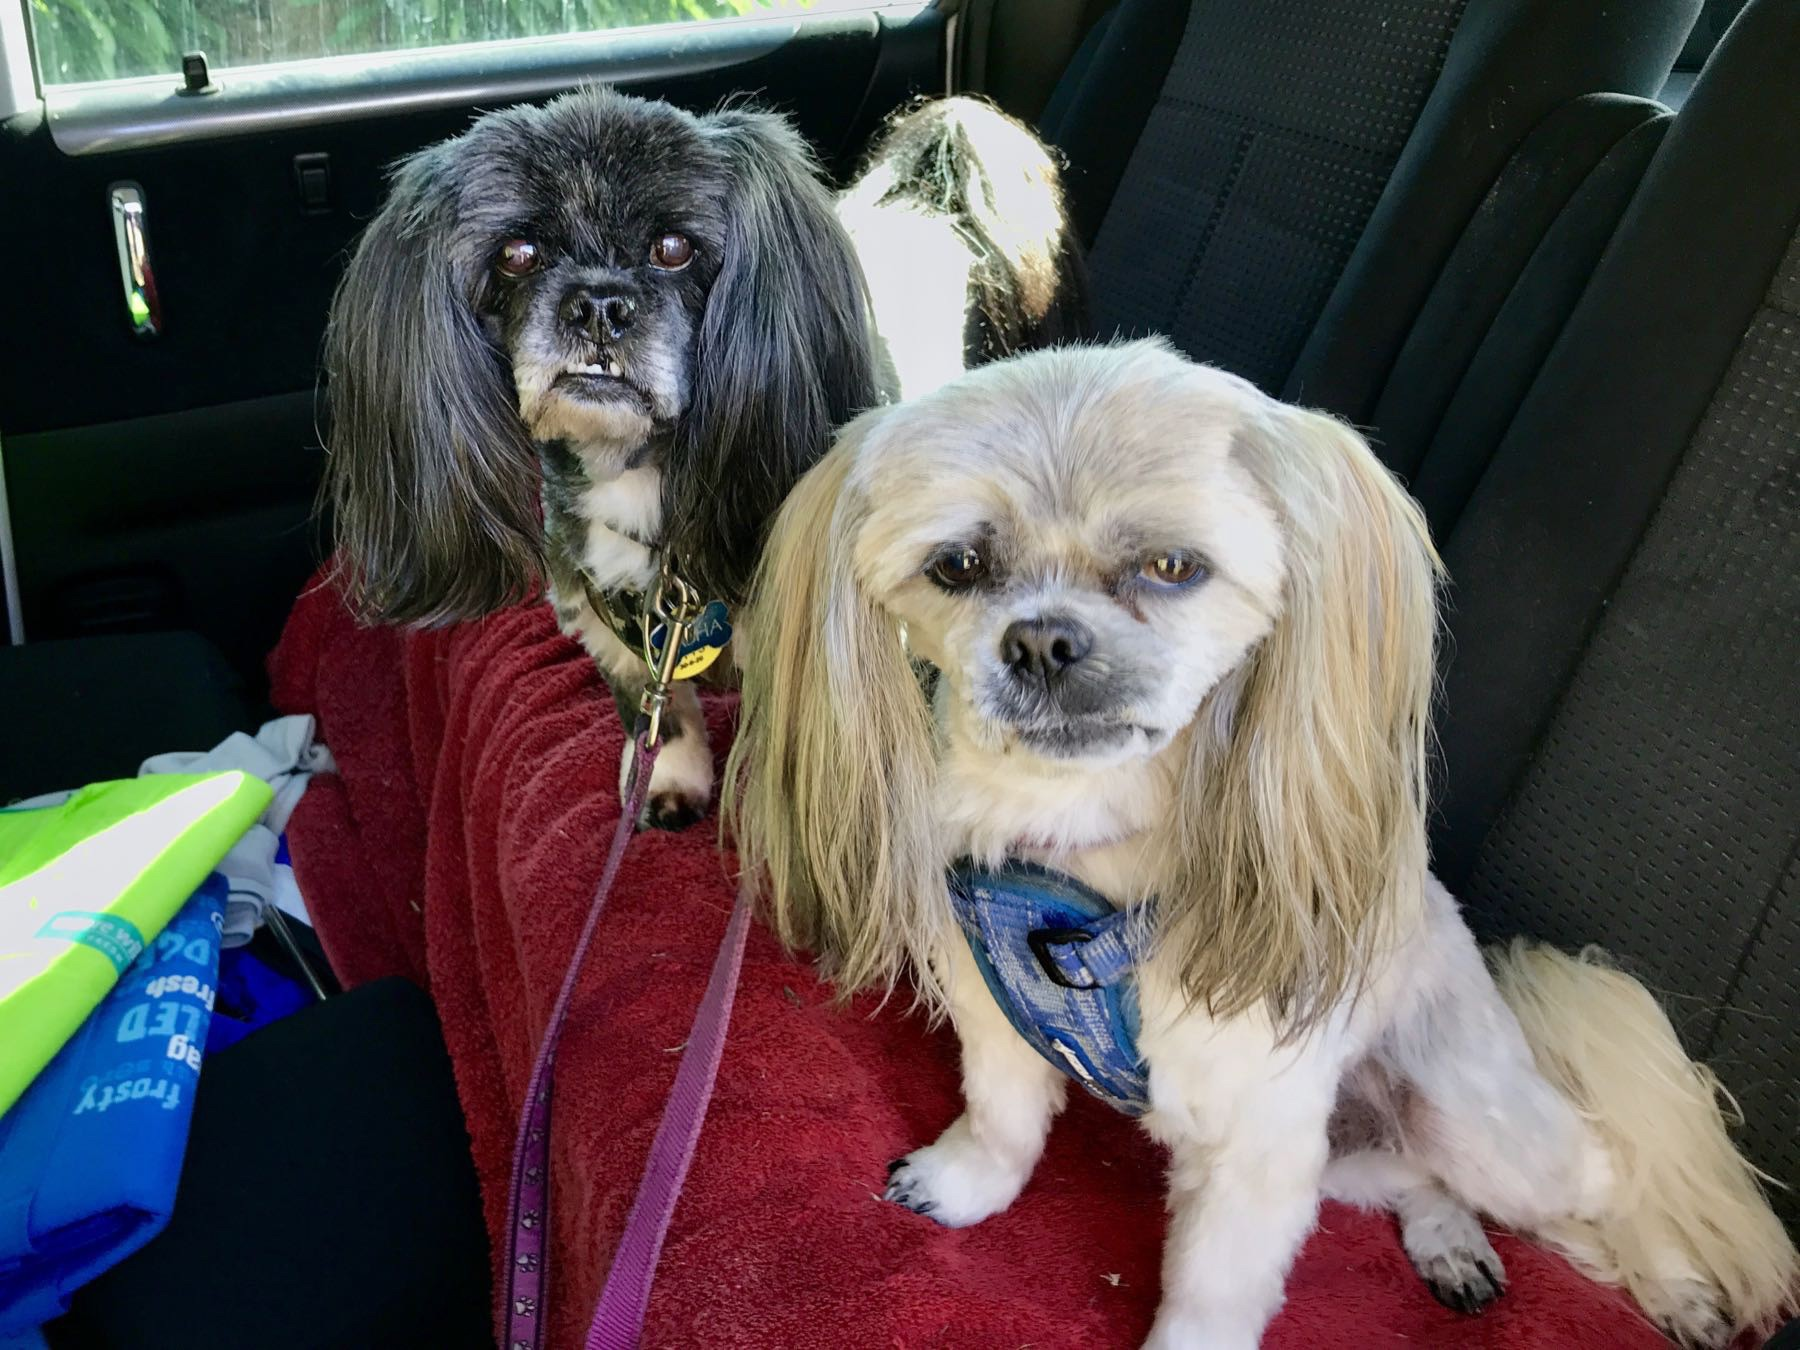 Two small well-groomed dogs in a car.